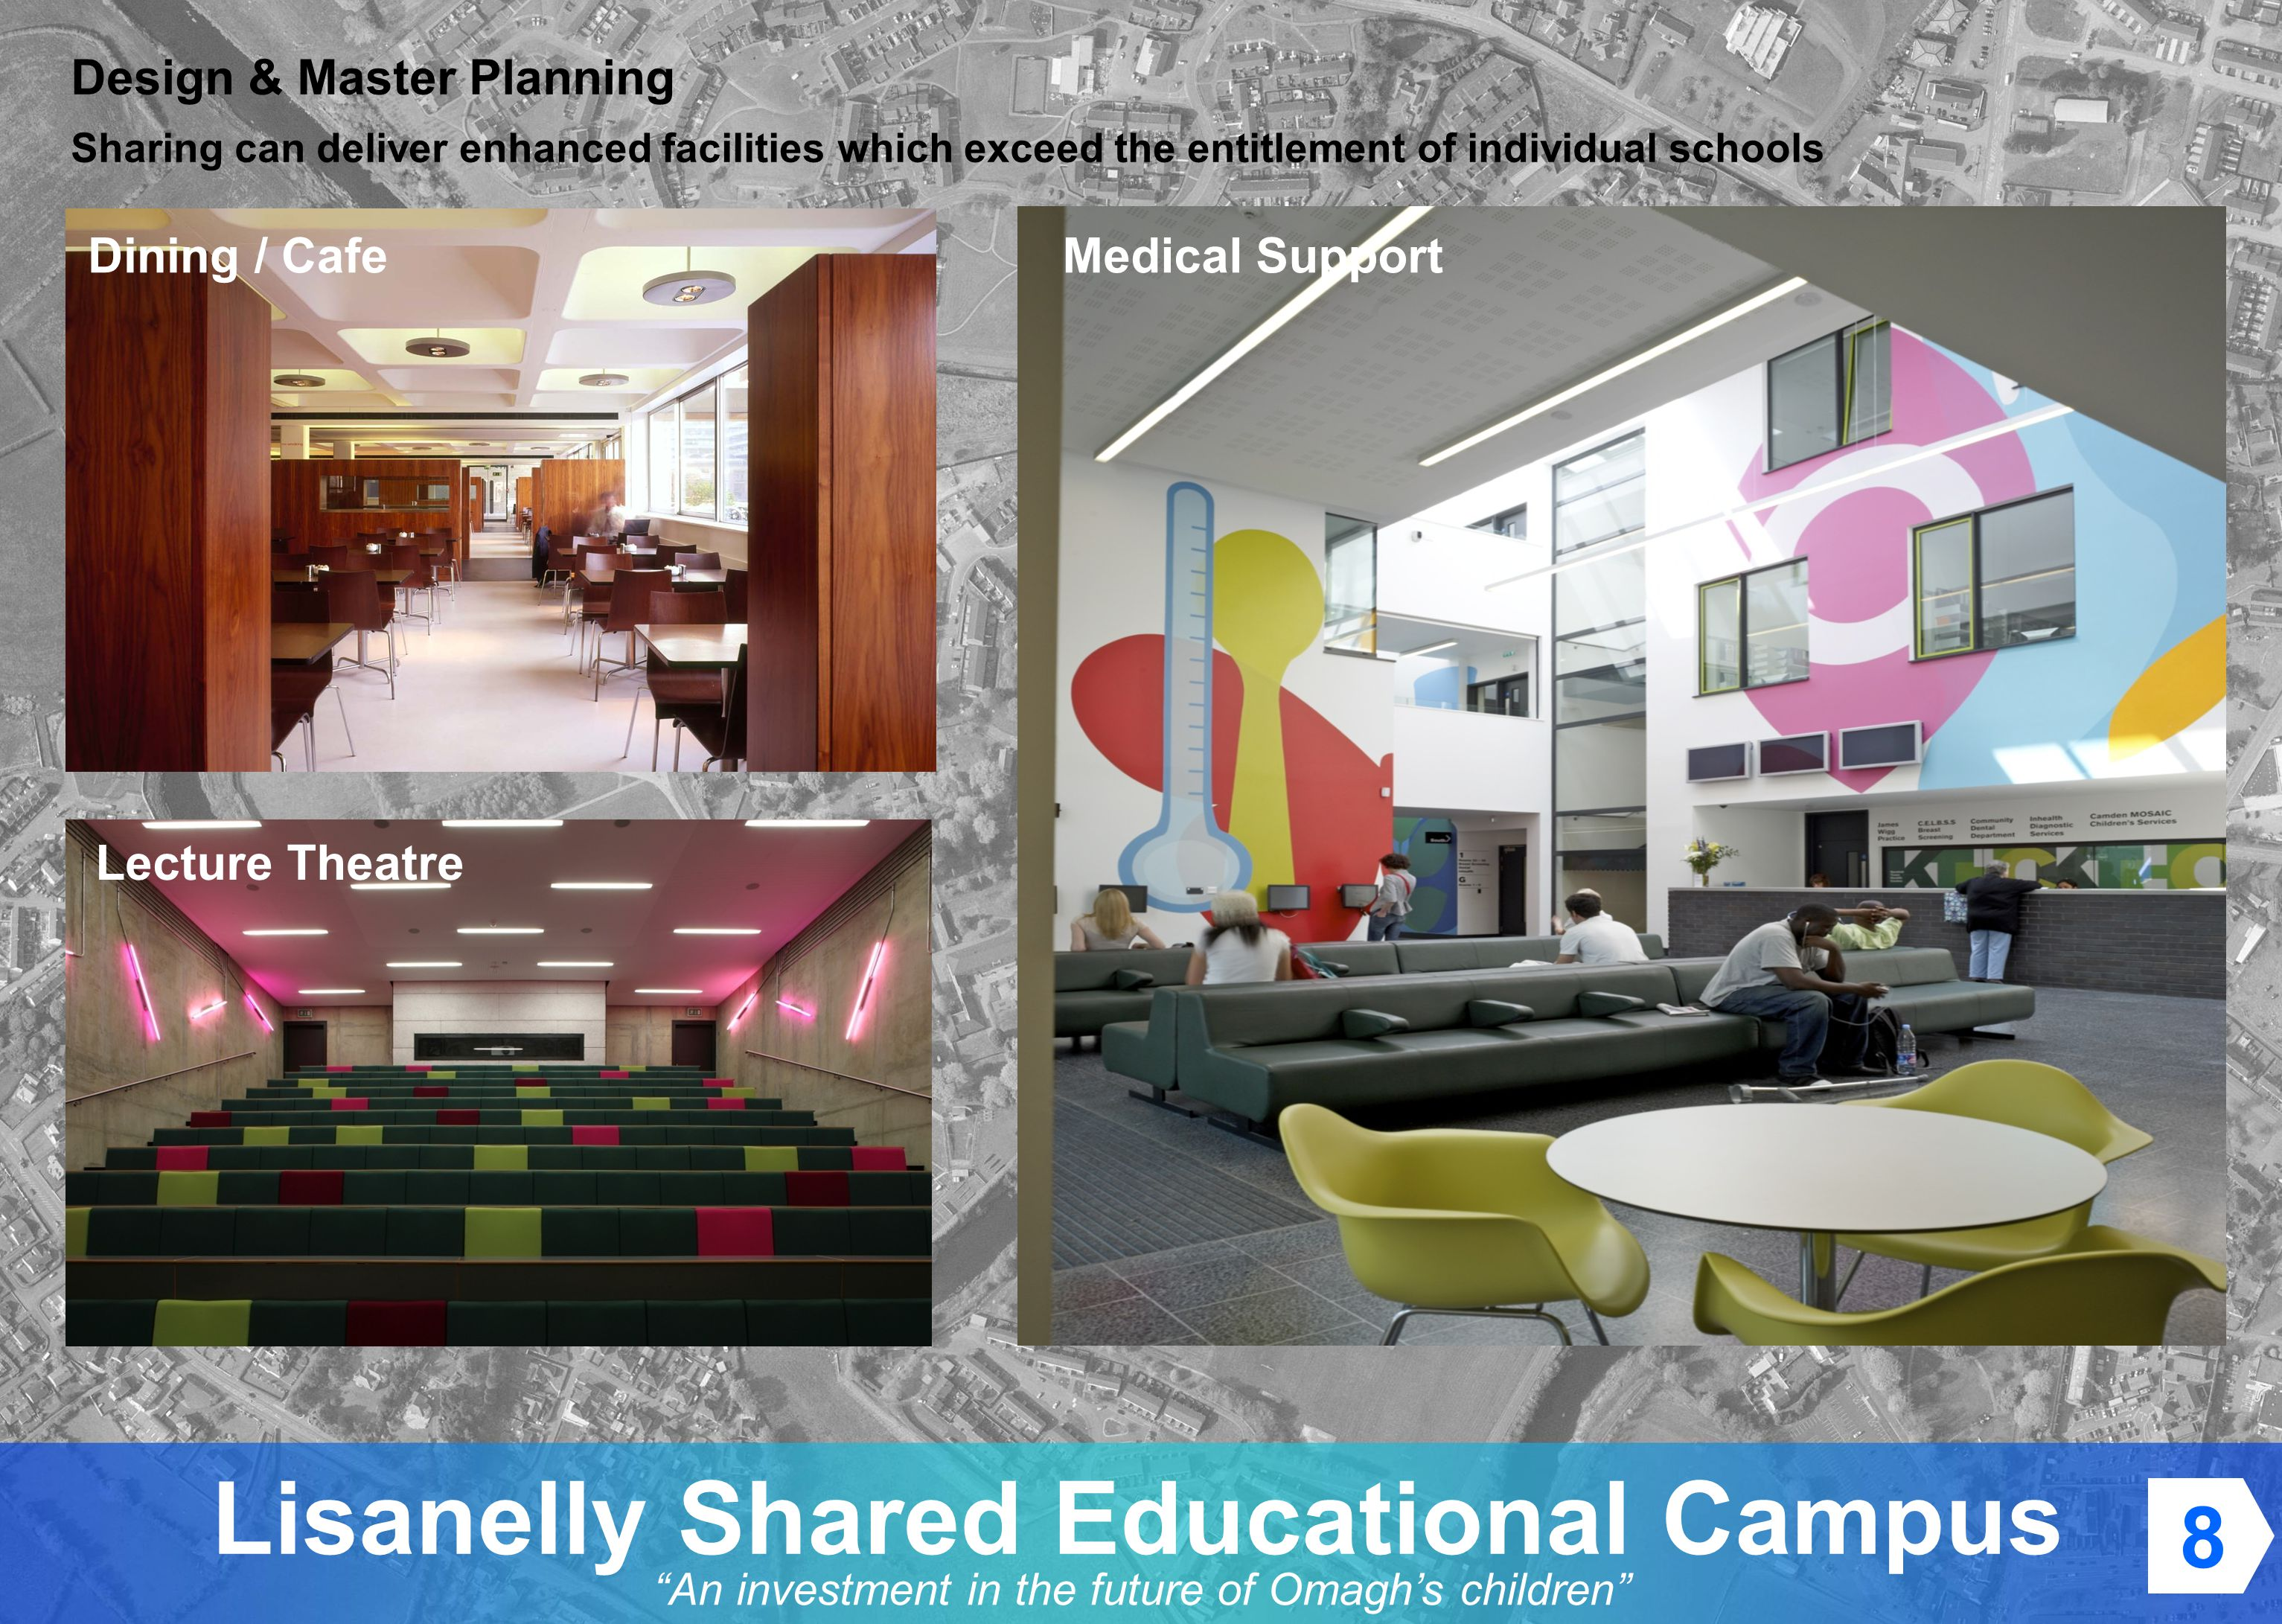 An investment in the future of Omaghs children Lisanelly Shared Educational Campus Design & Master Planning Sharing can deliver enhanced facilities which exceed the entitlement of individual schools Dining / Cafe Lecture Theatre Medical Support 8